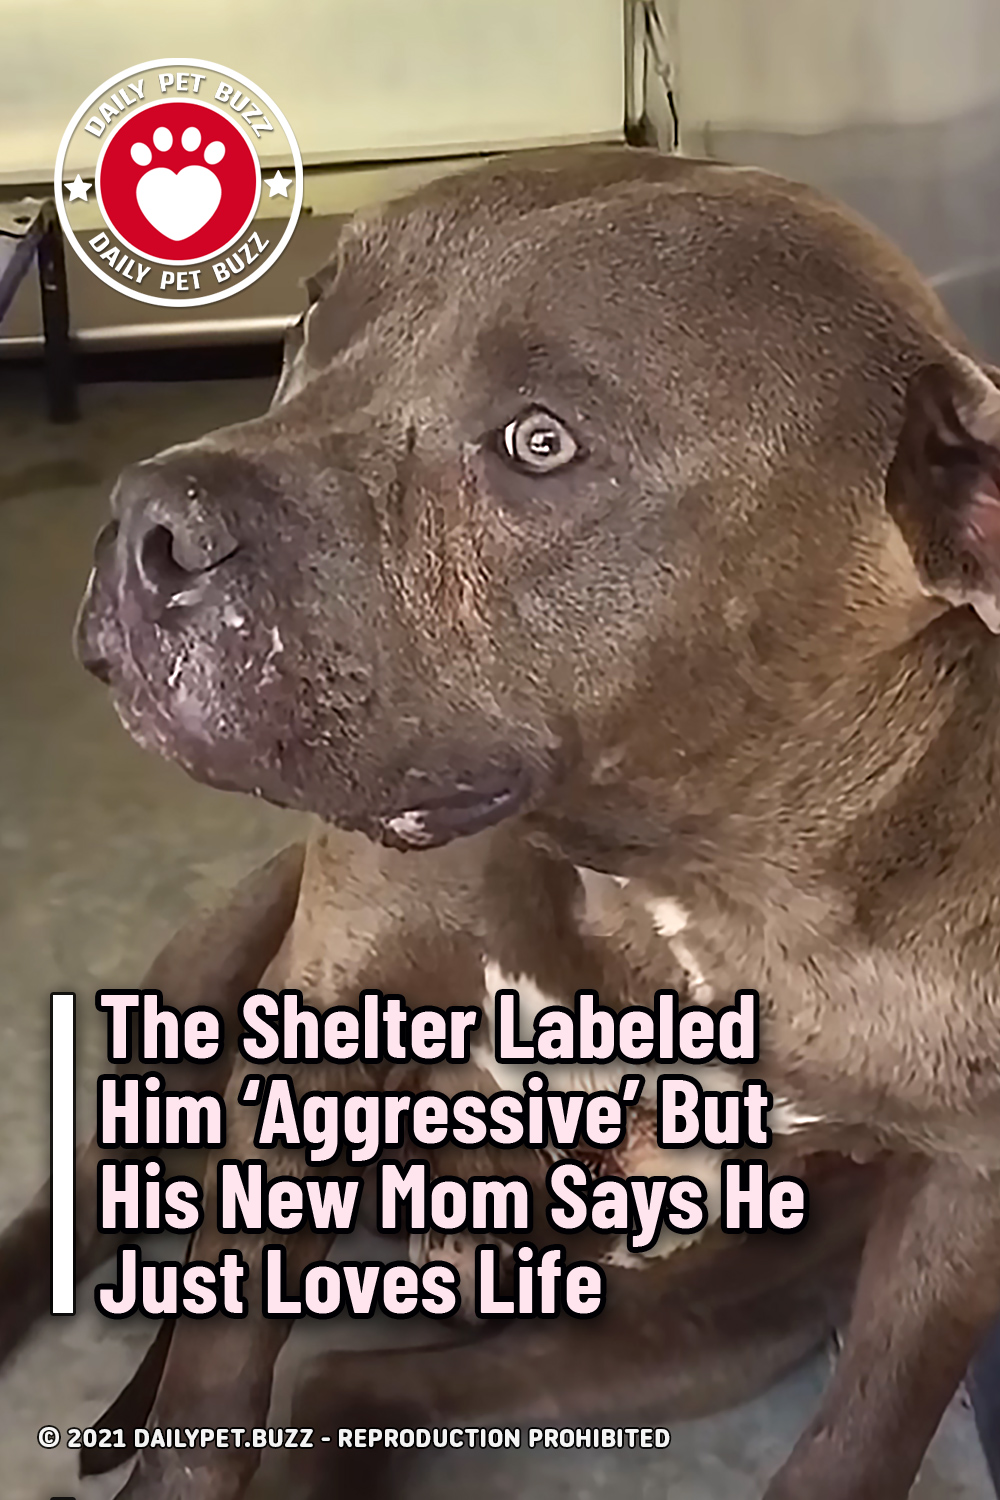 The Shelter Labeled Him \'Aggressive\' But His New Mom Says He Just Loves Life